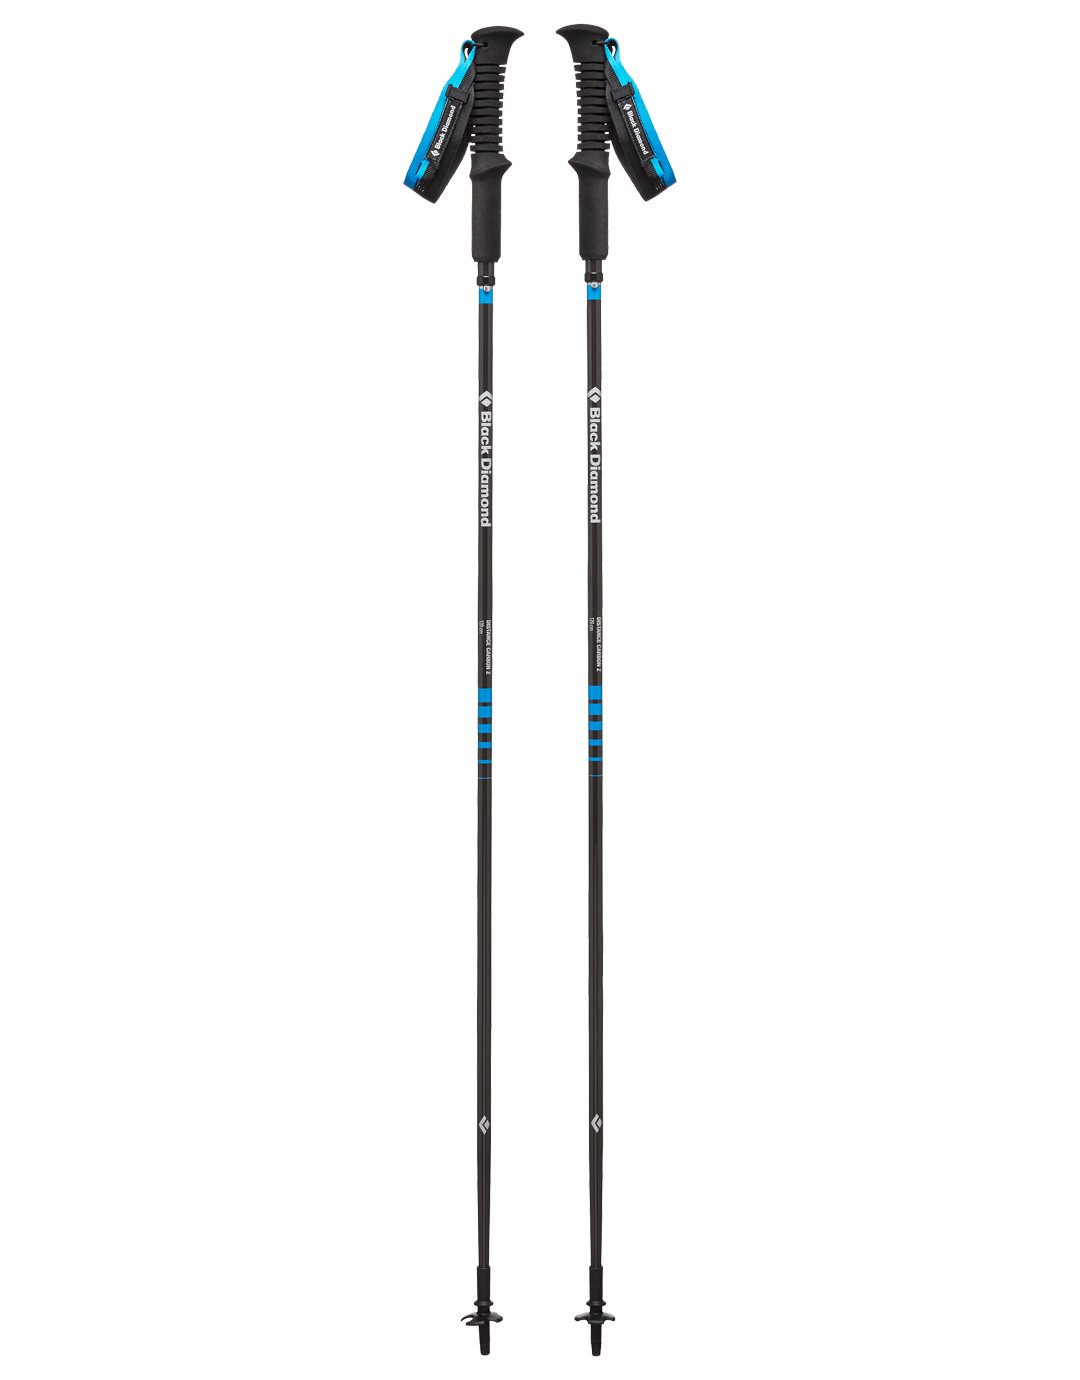 Distance Carbon Z Walking Poles - Pair - 95 to 110cm